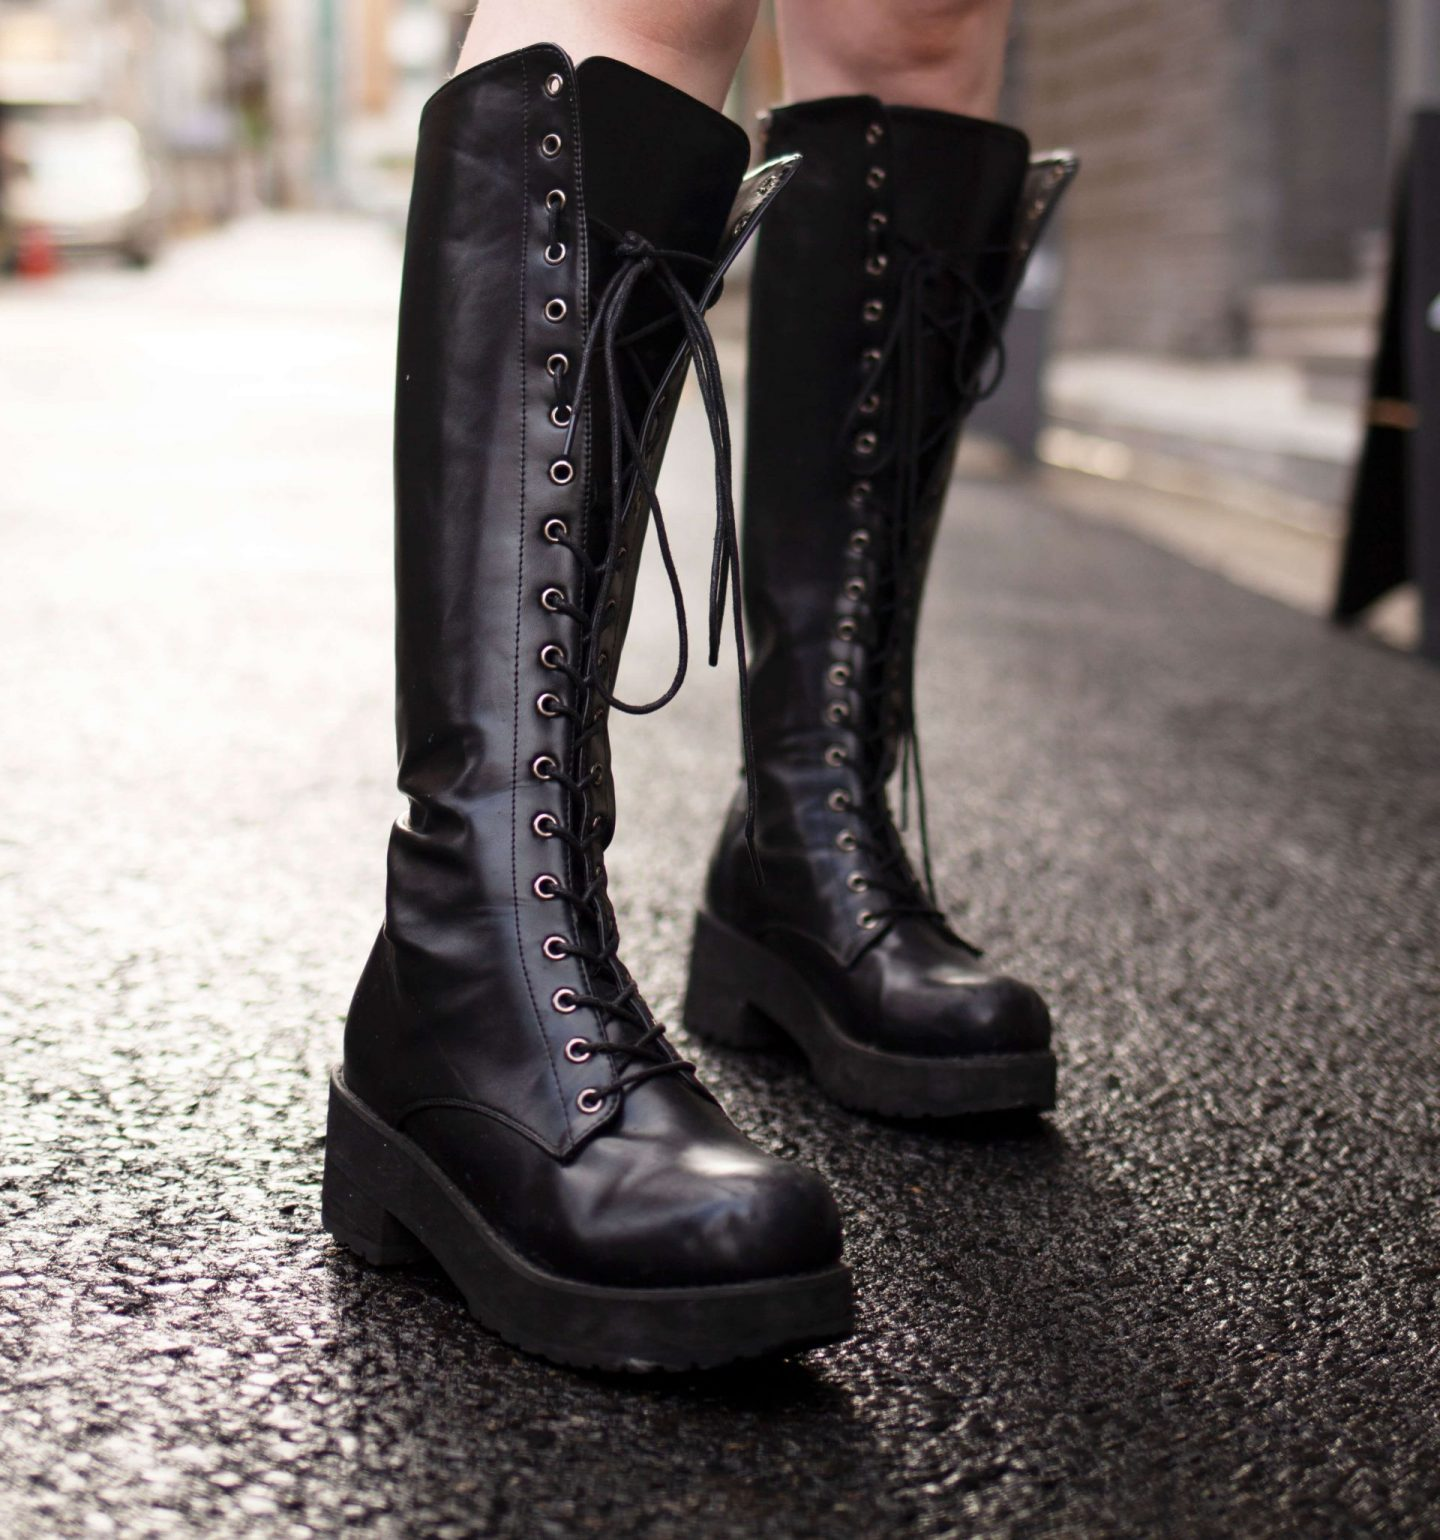 wardrobe staple chunky cleated boots